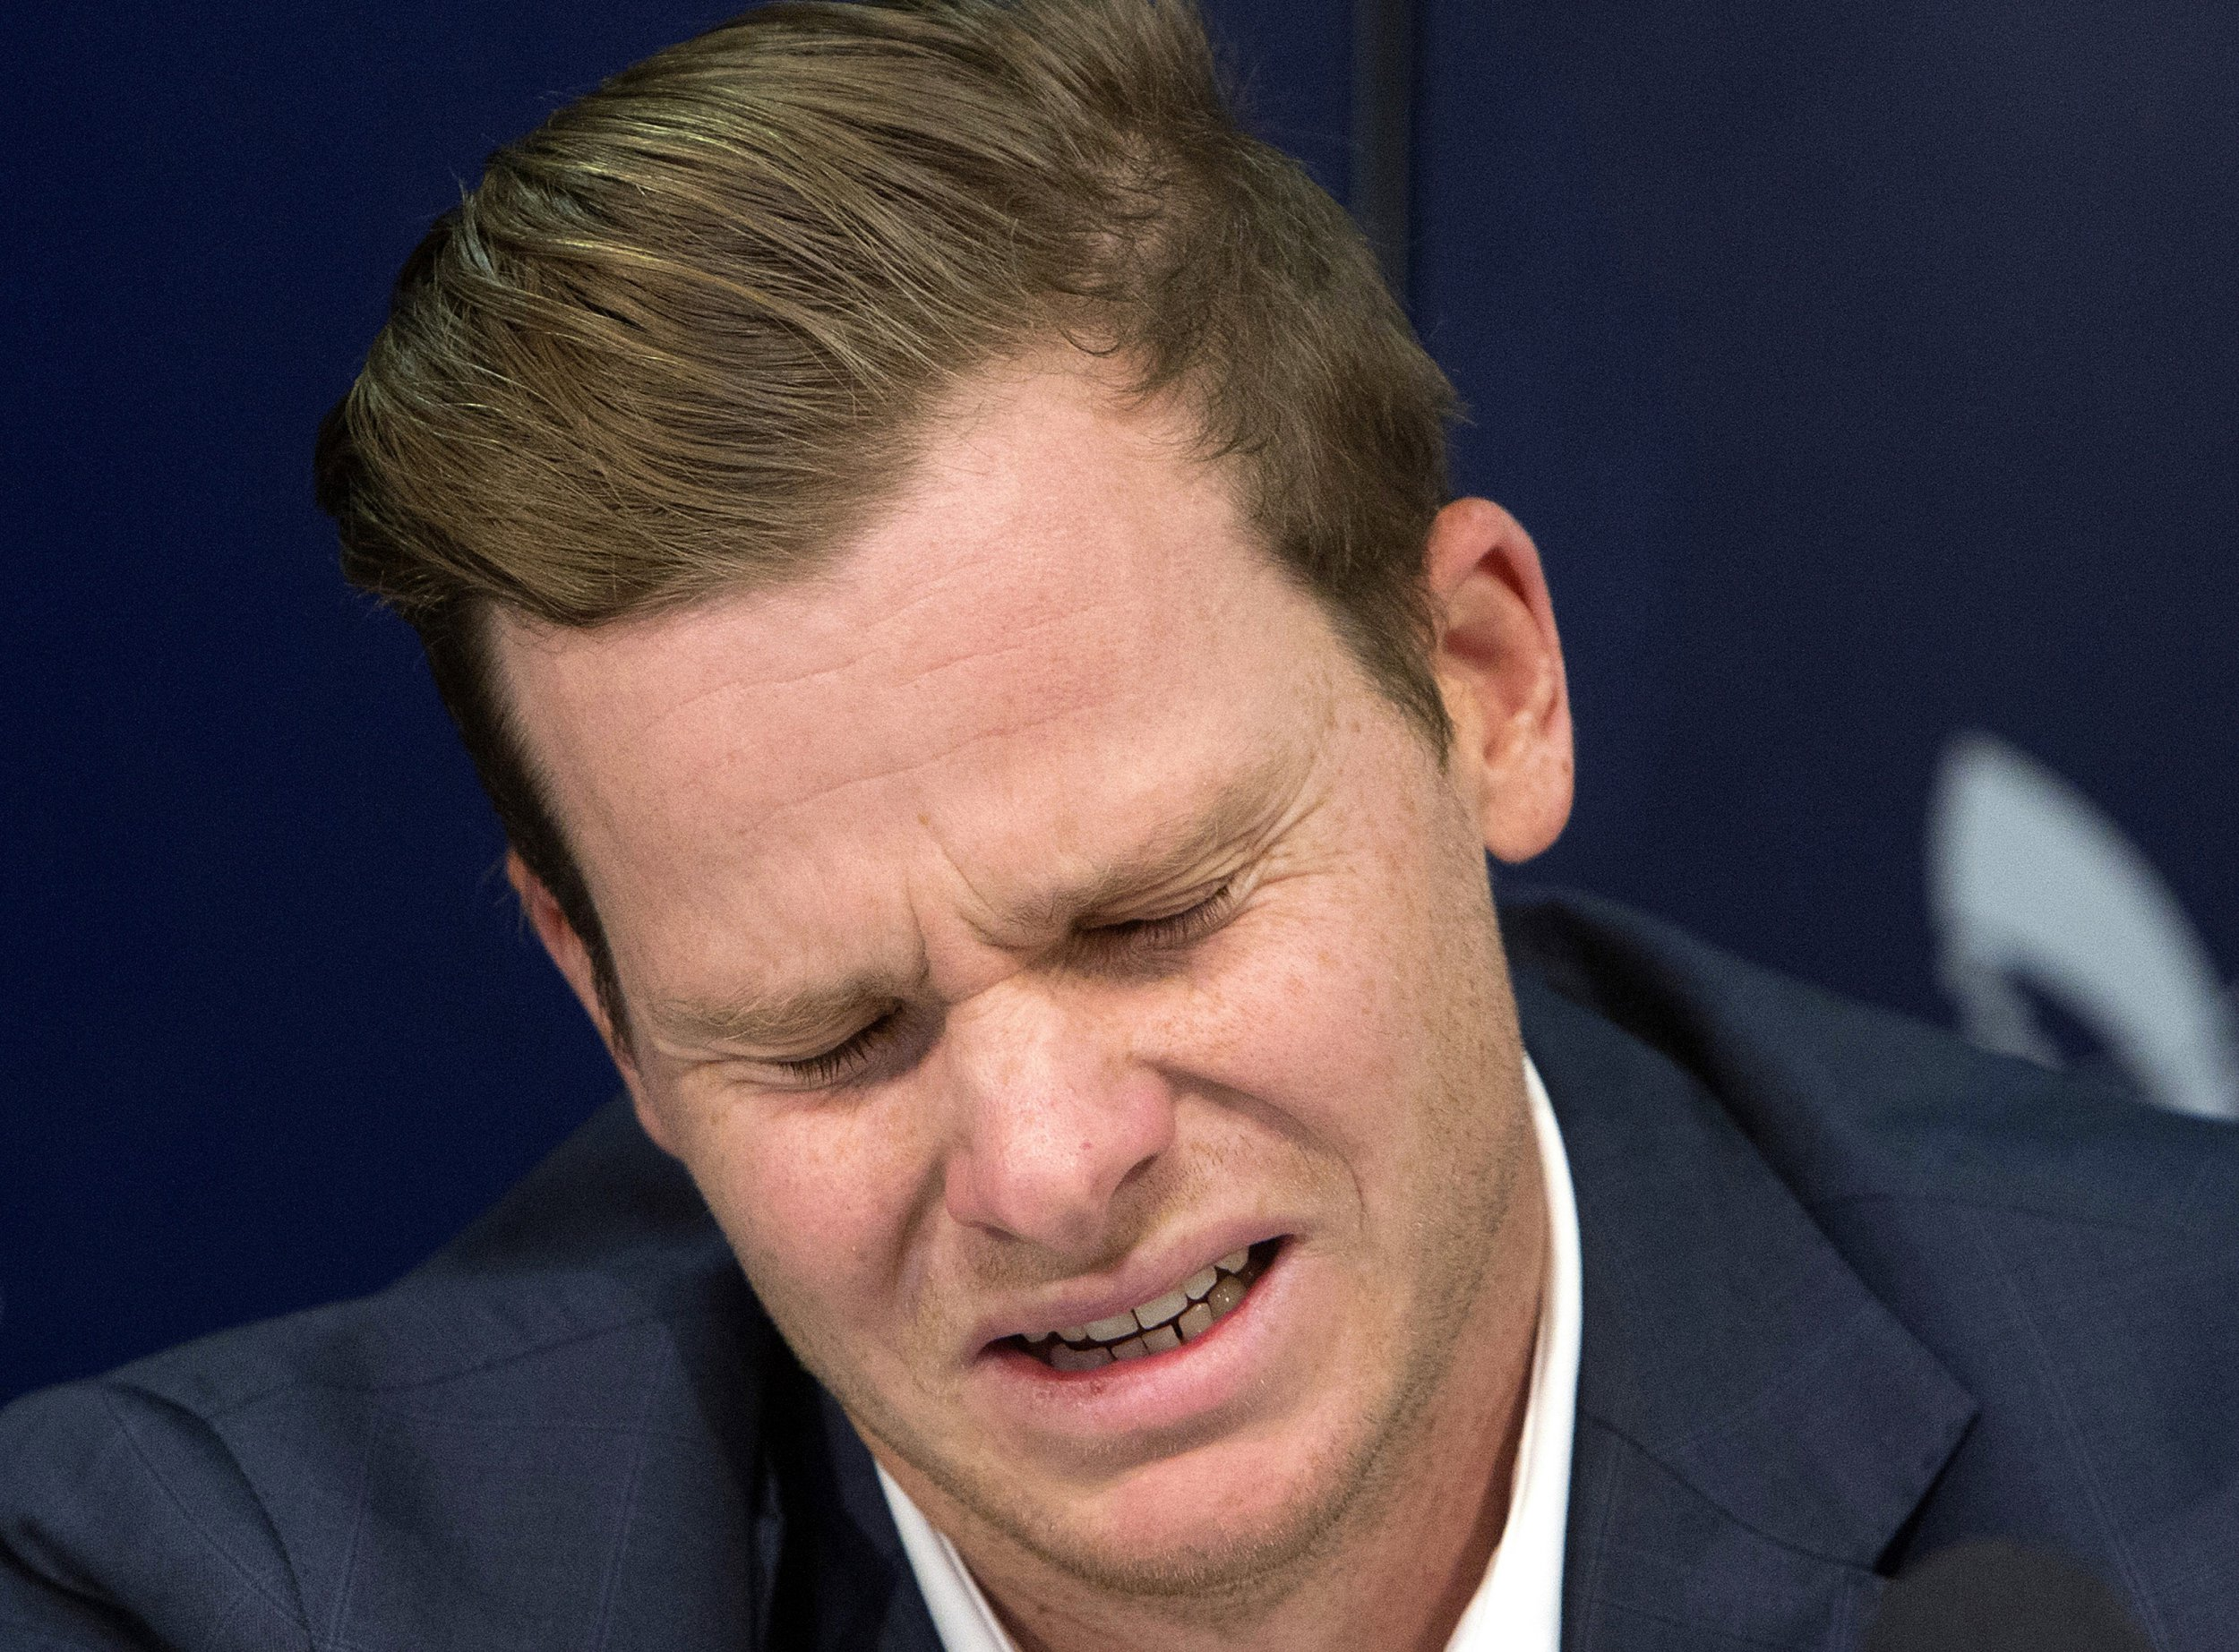 Former Australian cricket captain Steve Smith grimaces as he speaks to the media in Sydney, Thursday, March 29, 2018, after being sent home from South Africa following a ball tampering scandal. Smith and vice-captain David Warner were banned for 12 months while young batsman Cameron Bancroft received 9 months after an investigation into the Australian cricket team's cheating scandal identified Warner as the instigator of the ball tampering plan that unraveled in South Africa. (AP Photo/Steve Christo)